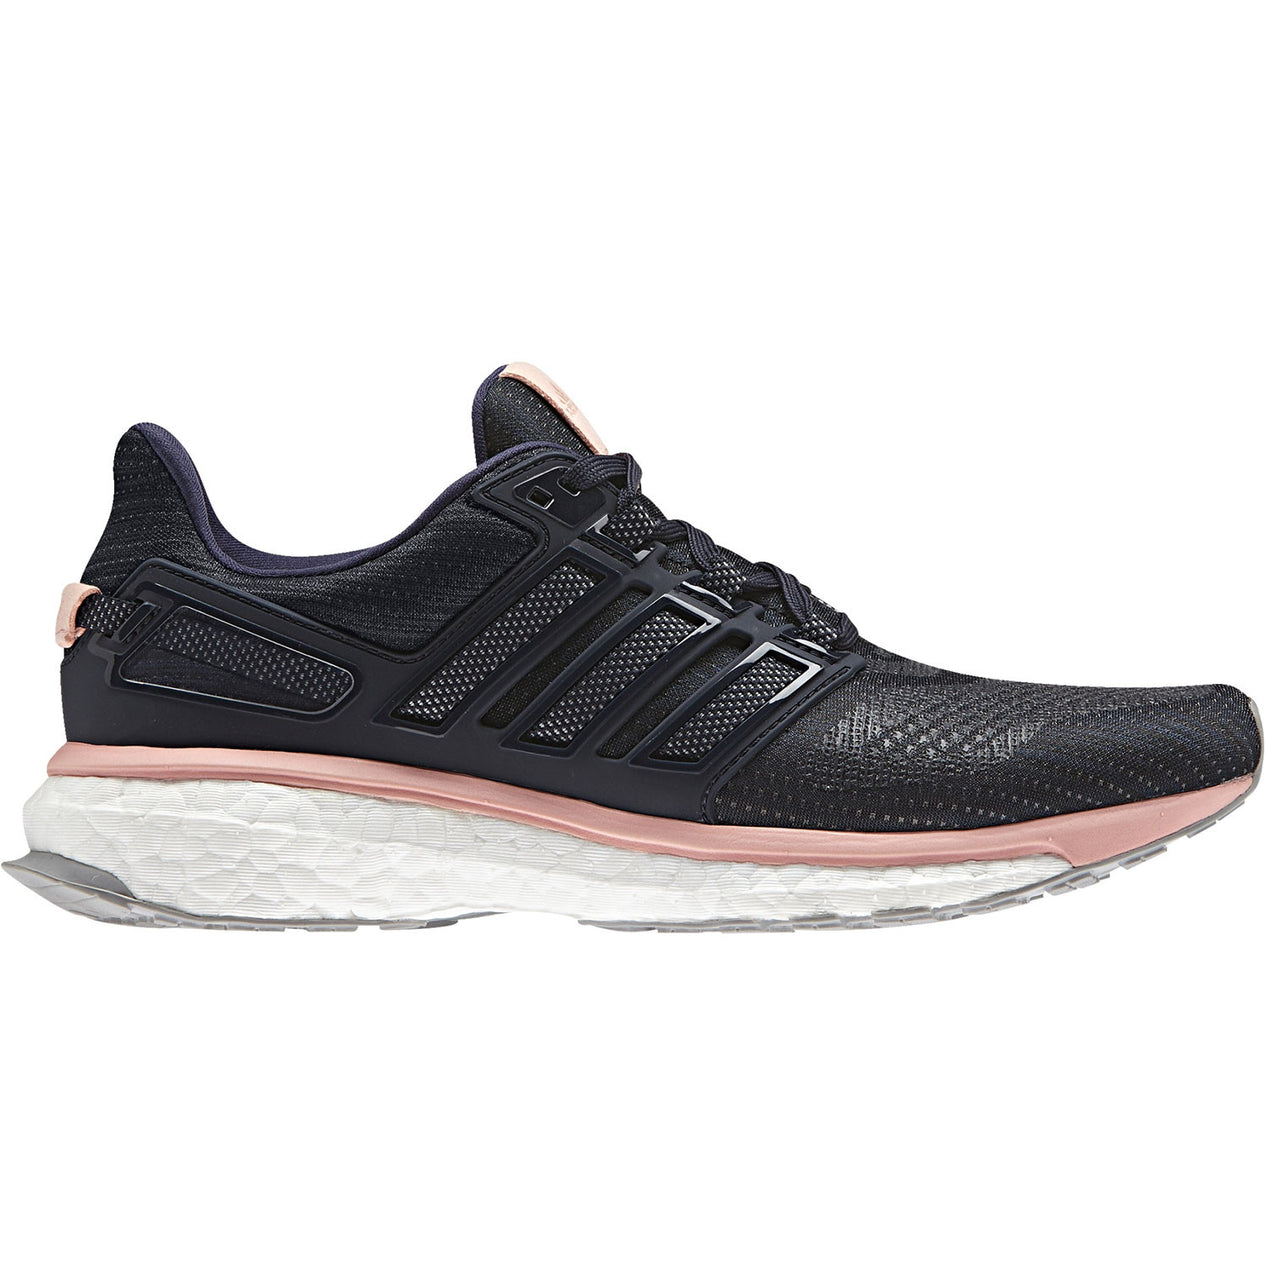 8a51134e46aaa Adidas Souliers De Course Energy Boost 3 Femme